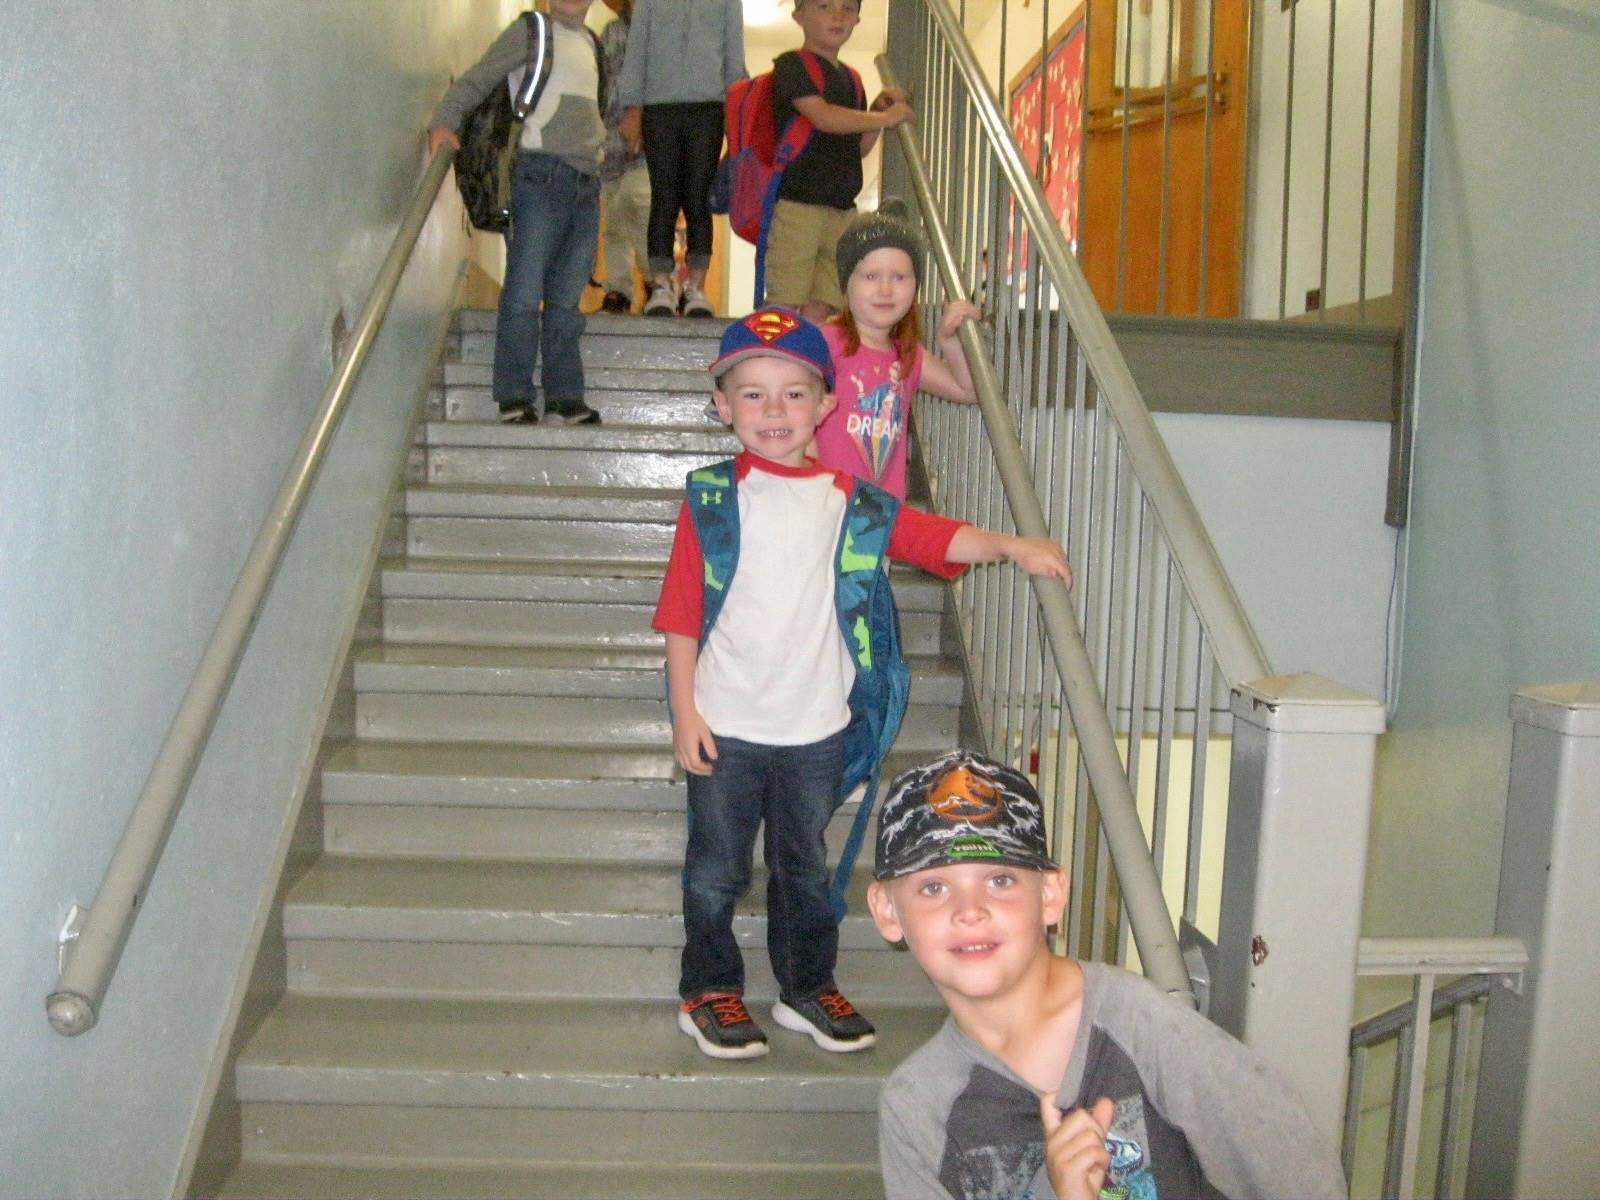 Students on stairs with hats.